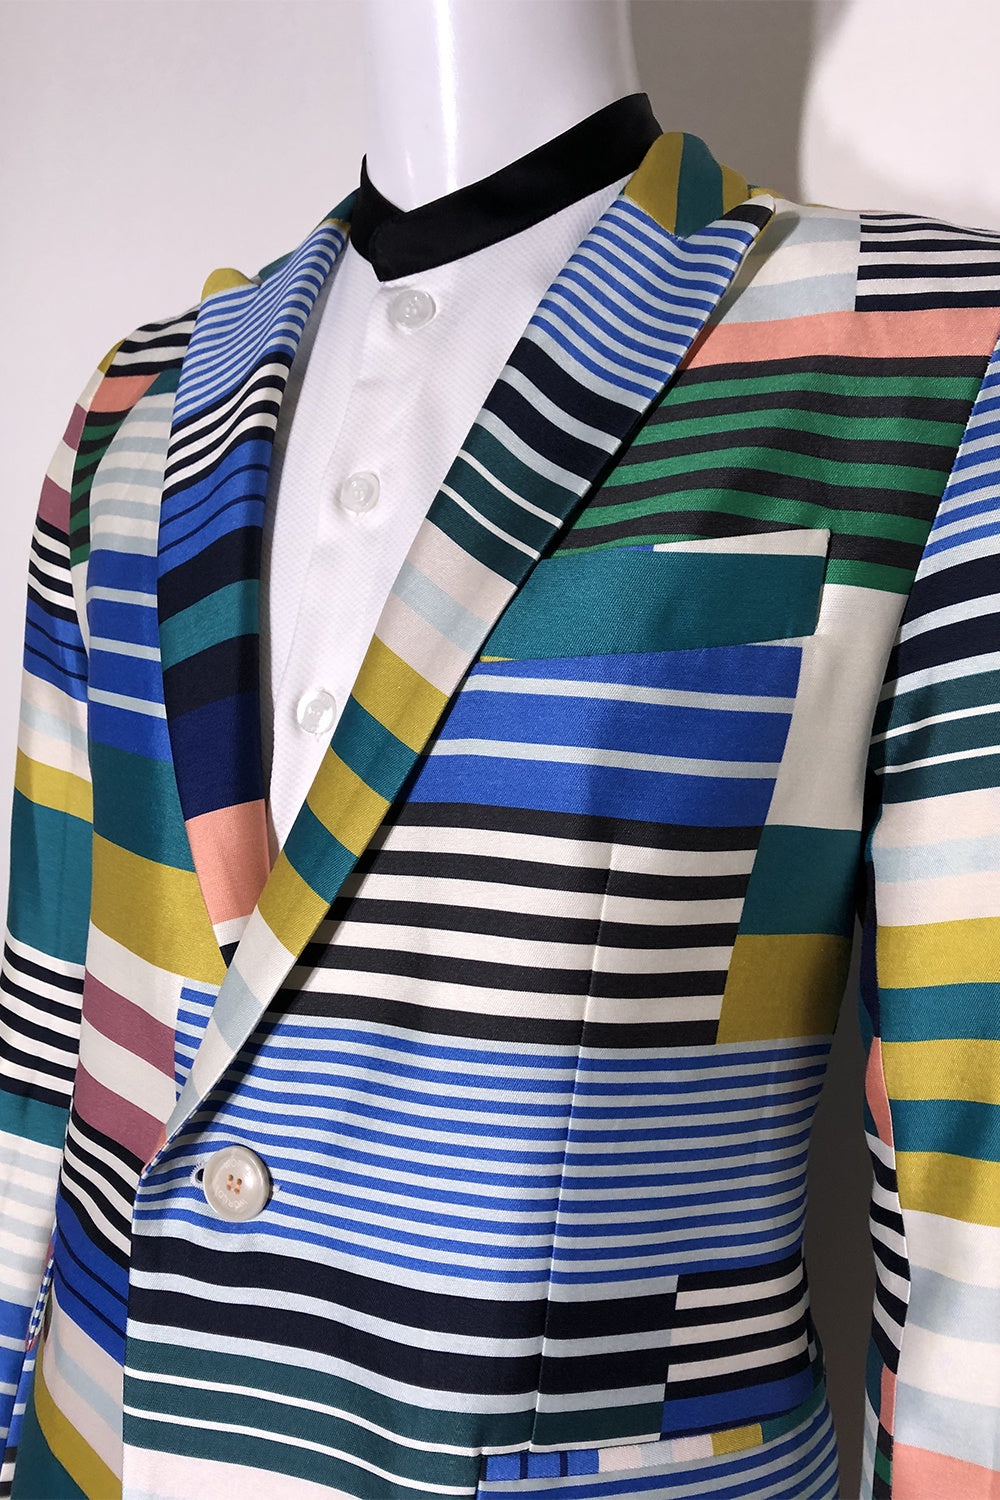 WORLDman 4663 Eager Blazer Multi Stripe